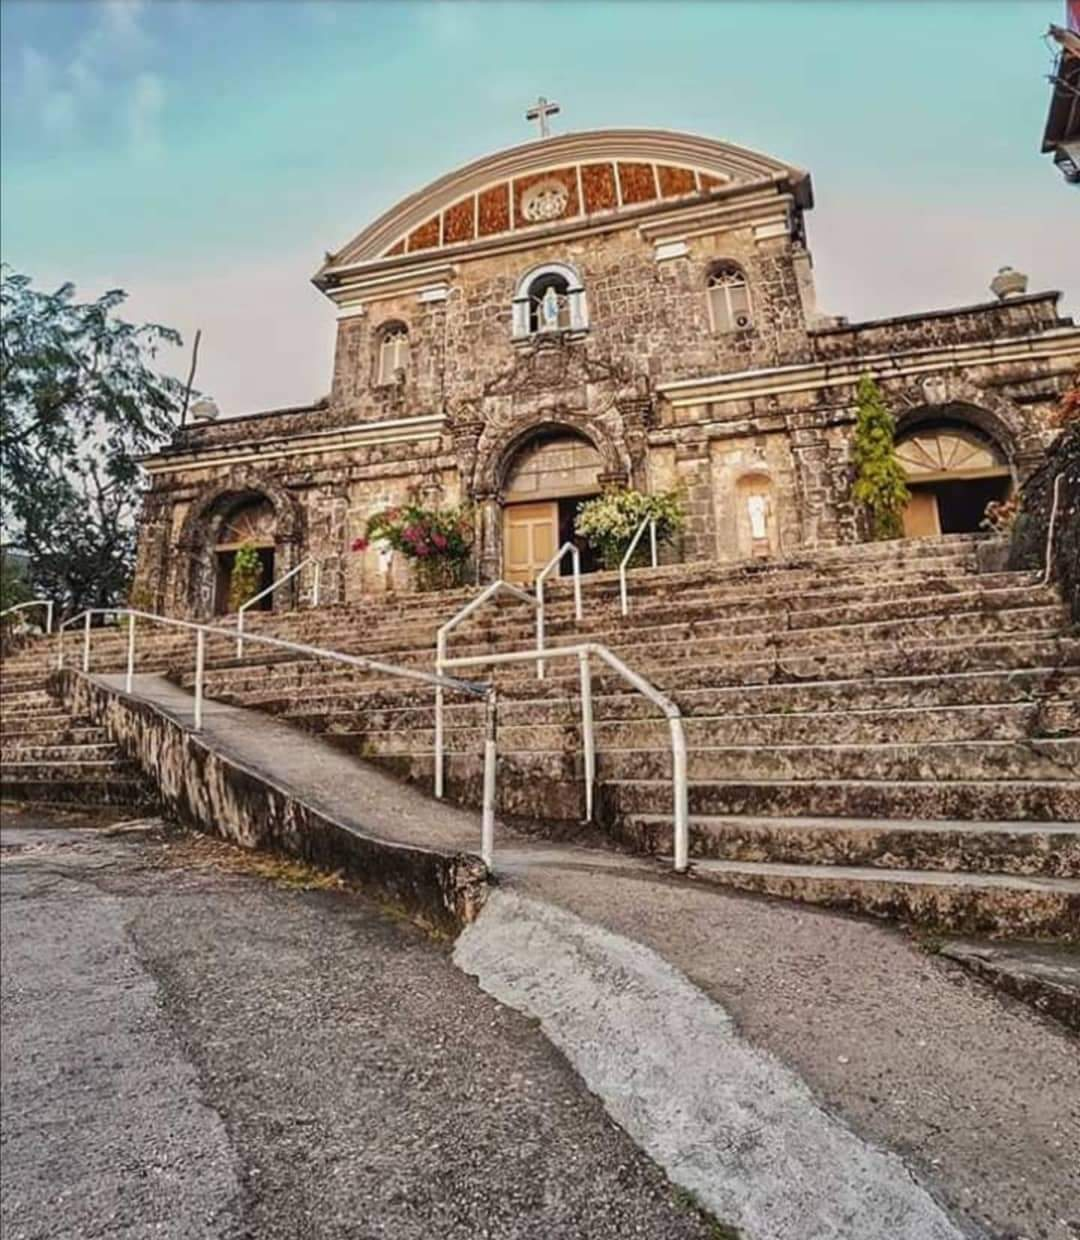 Culion Island holds a rich history